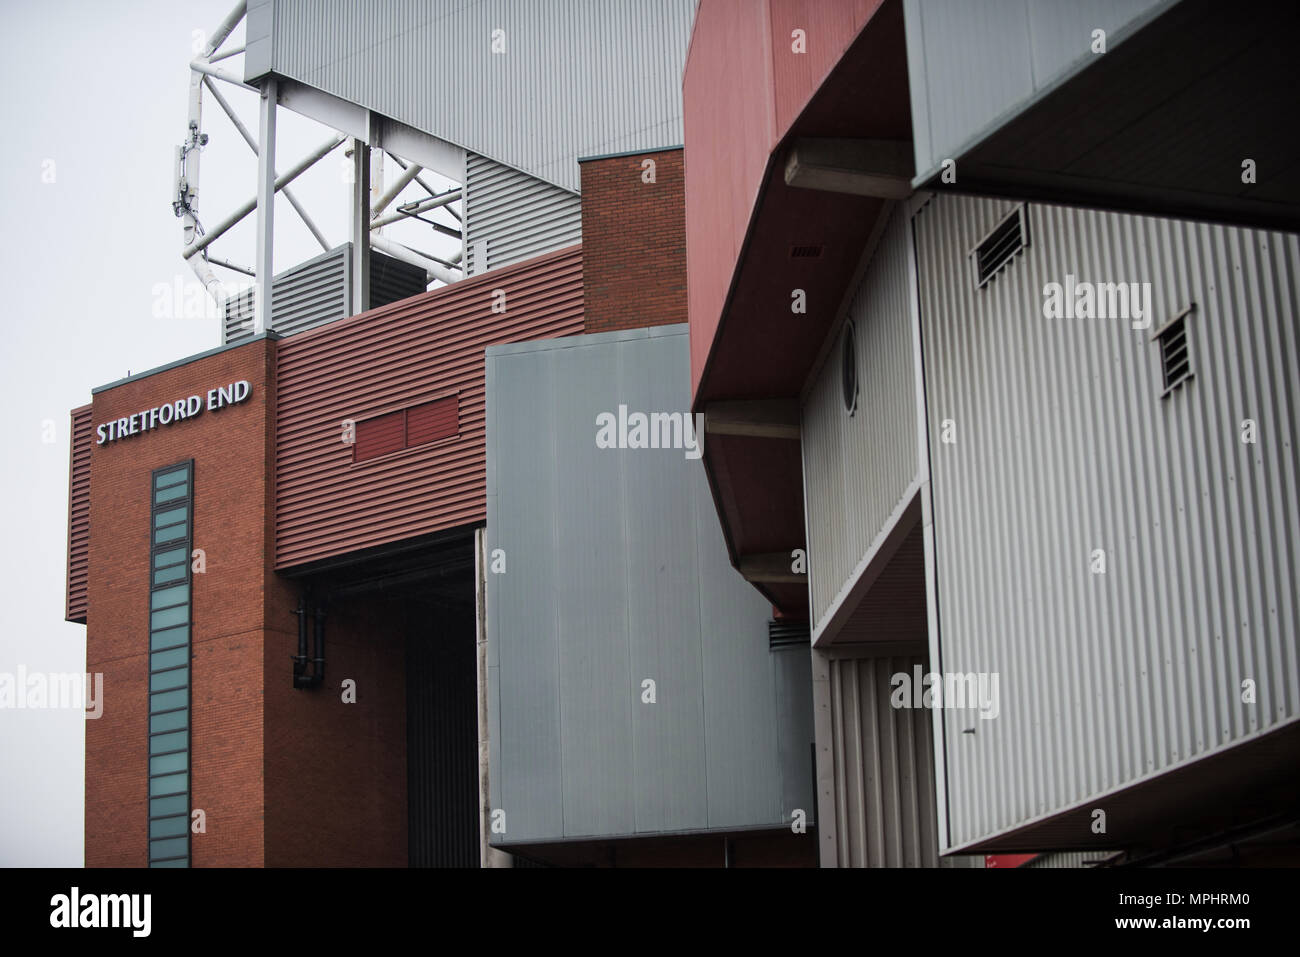 Stretford End. Old Trafford. Manchester United. - Stock Image